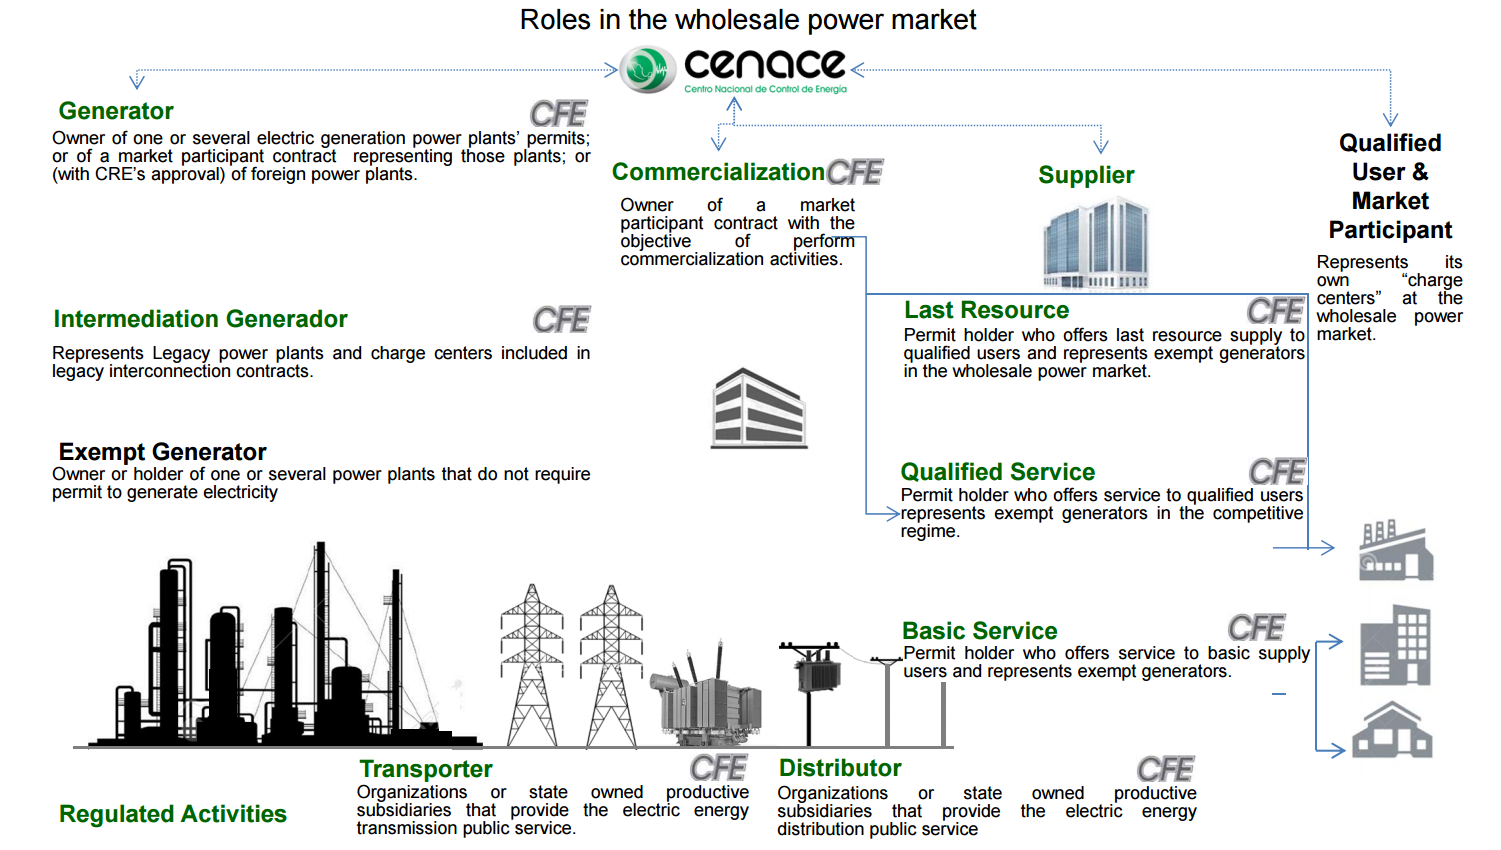 Roles_in_the_wholesale_power_market